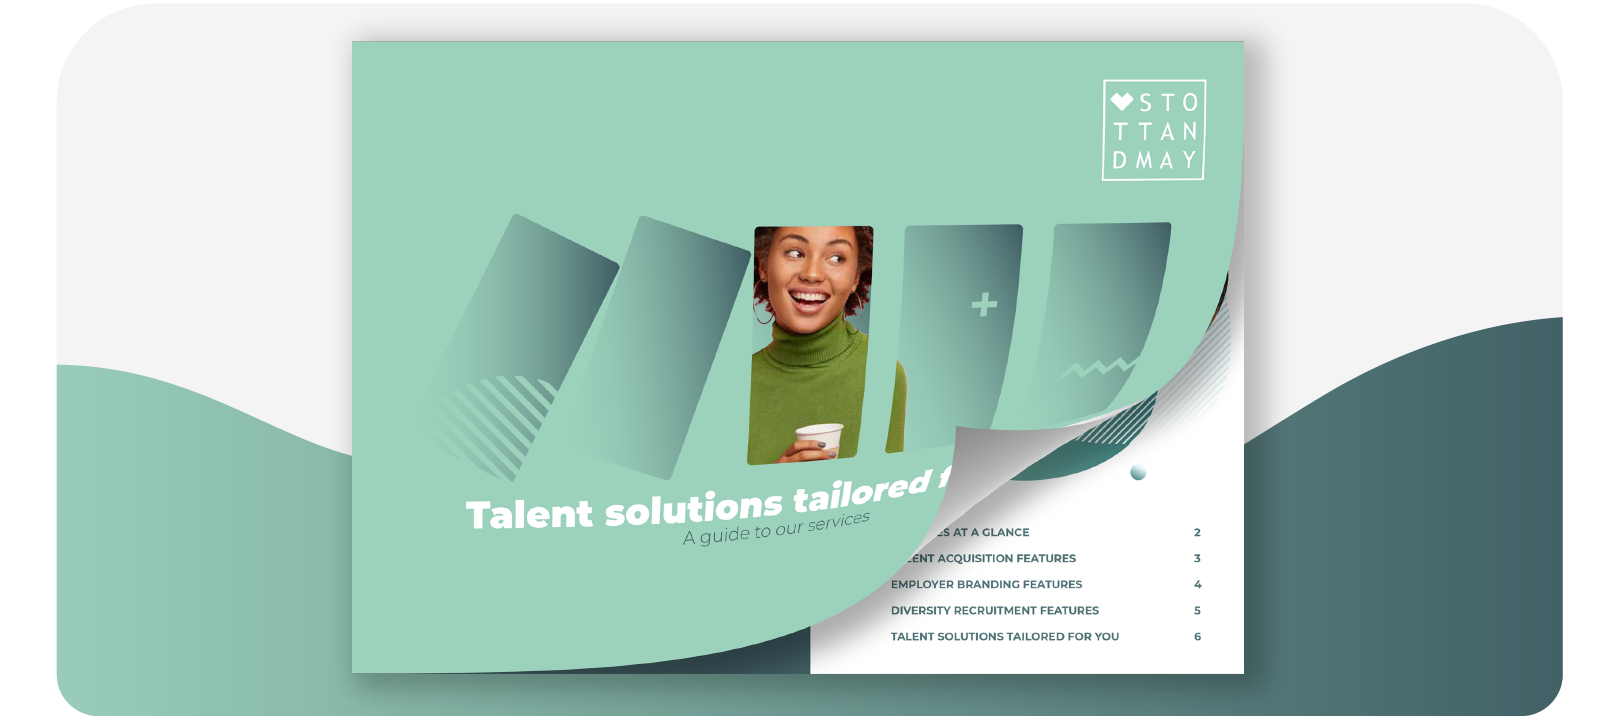 Stott and May Talent Solutions Guide